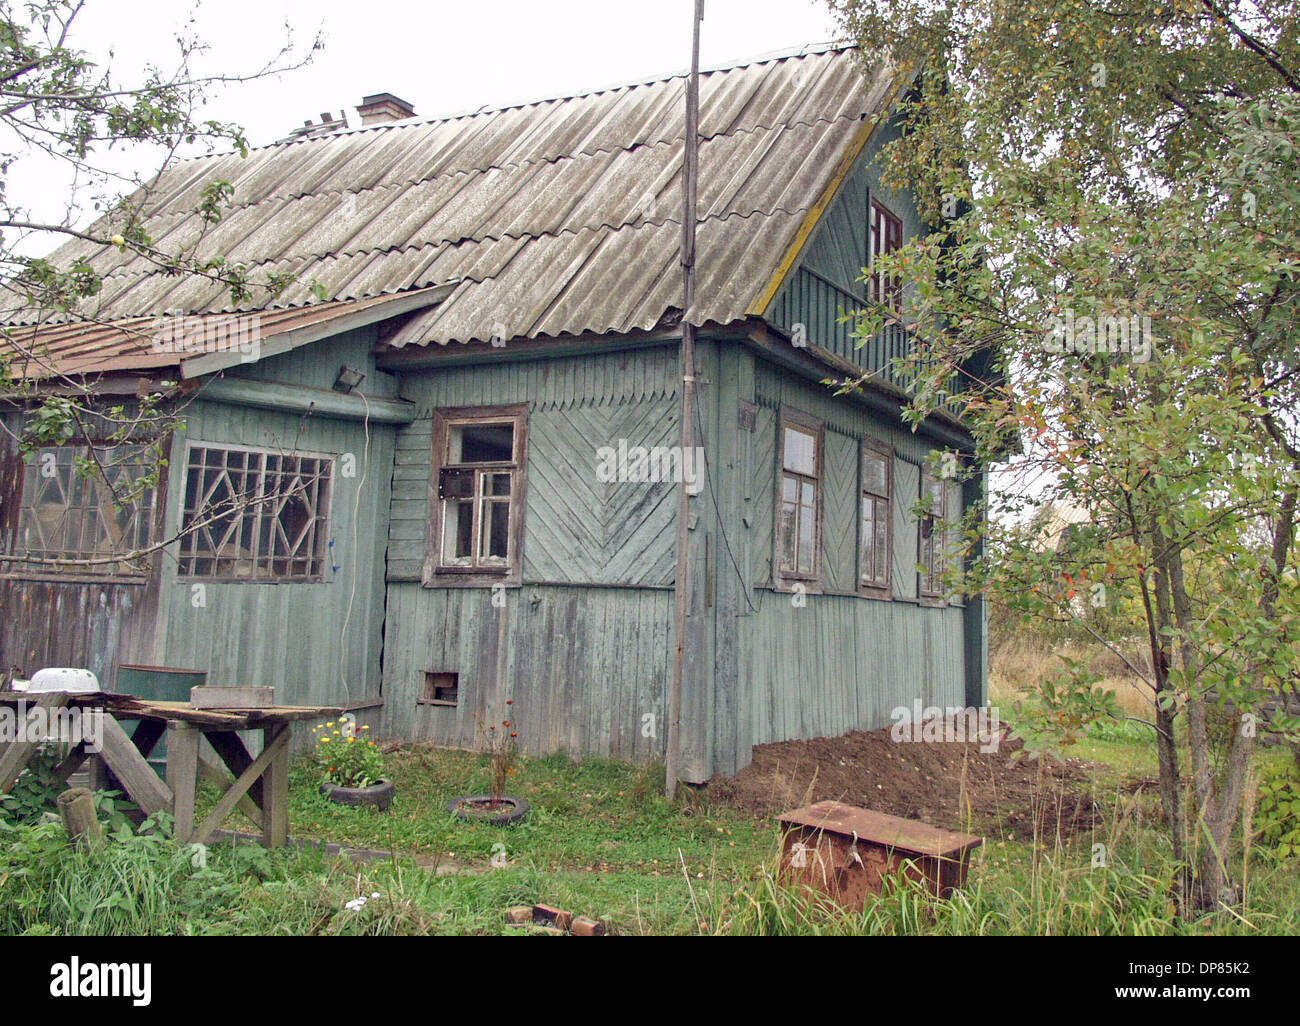 Dacha Country House Of The Putins Country House Of Vladimir Putin S Stock Photo Alamy